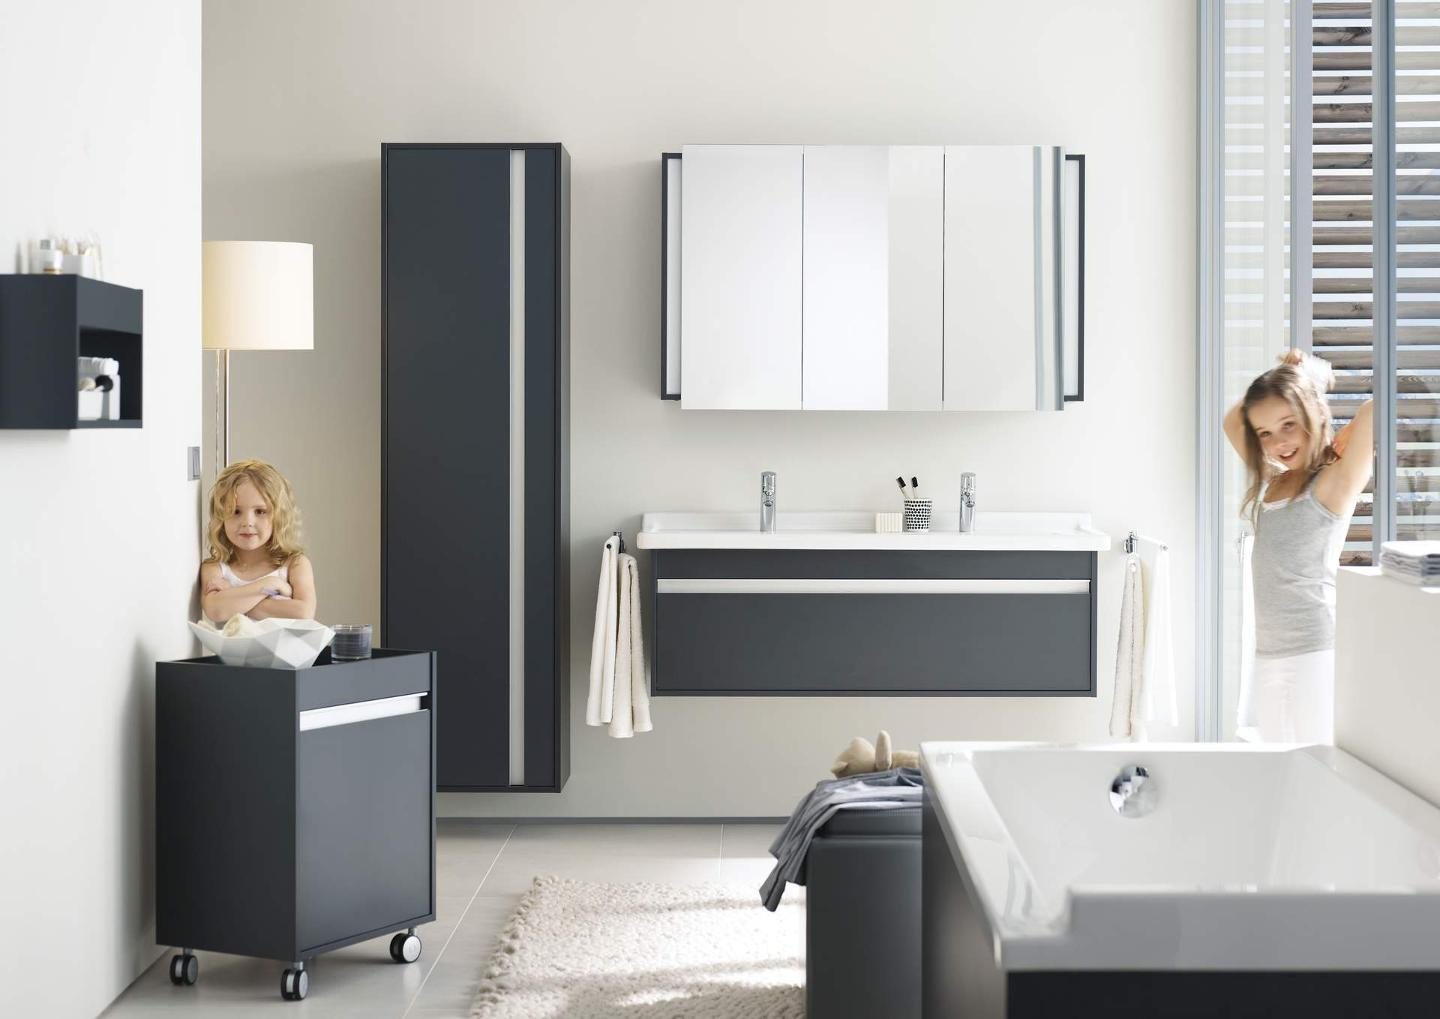 Duravit Ketho Bathroom Furniture By Christian Werner Duravit